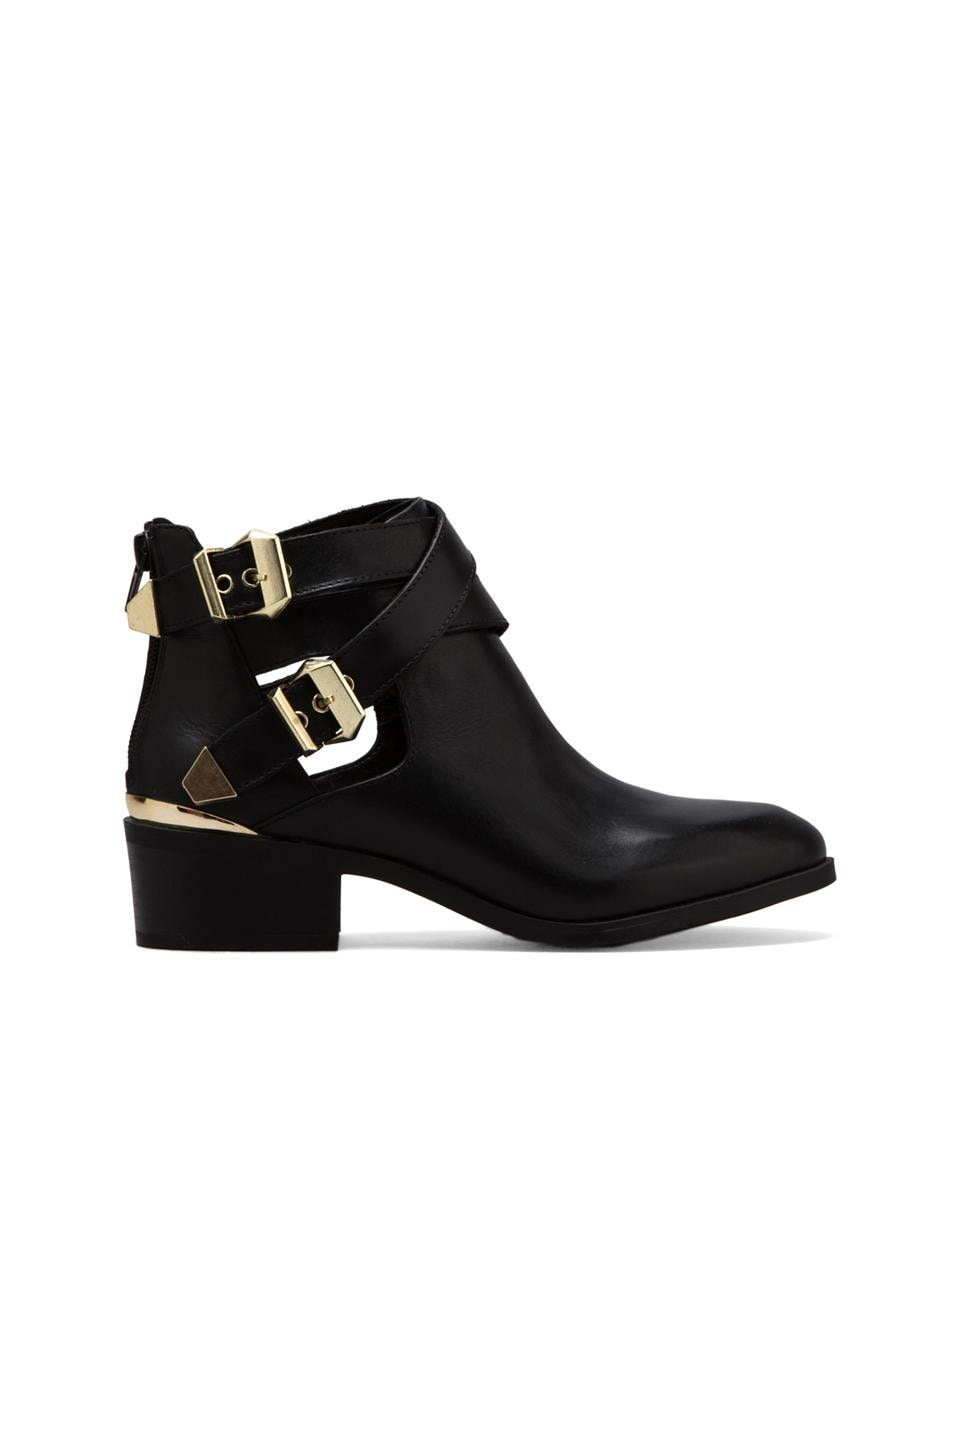 Seychelles Scoundrel Boot in Black